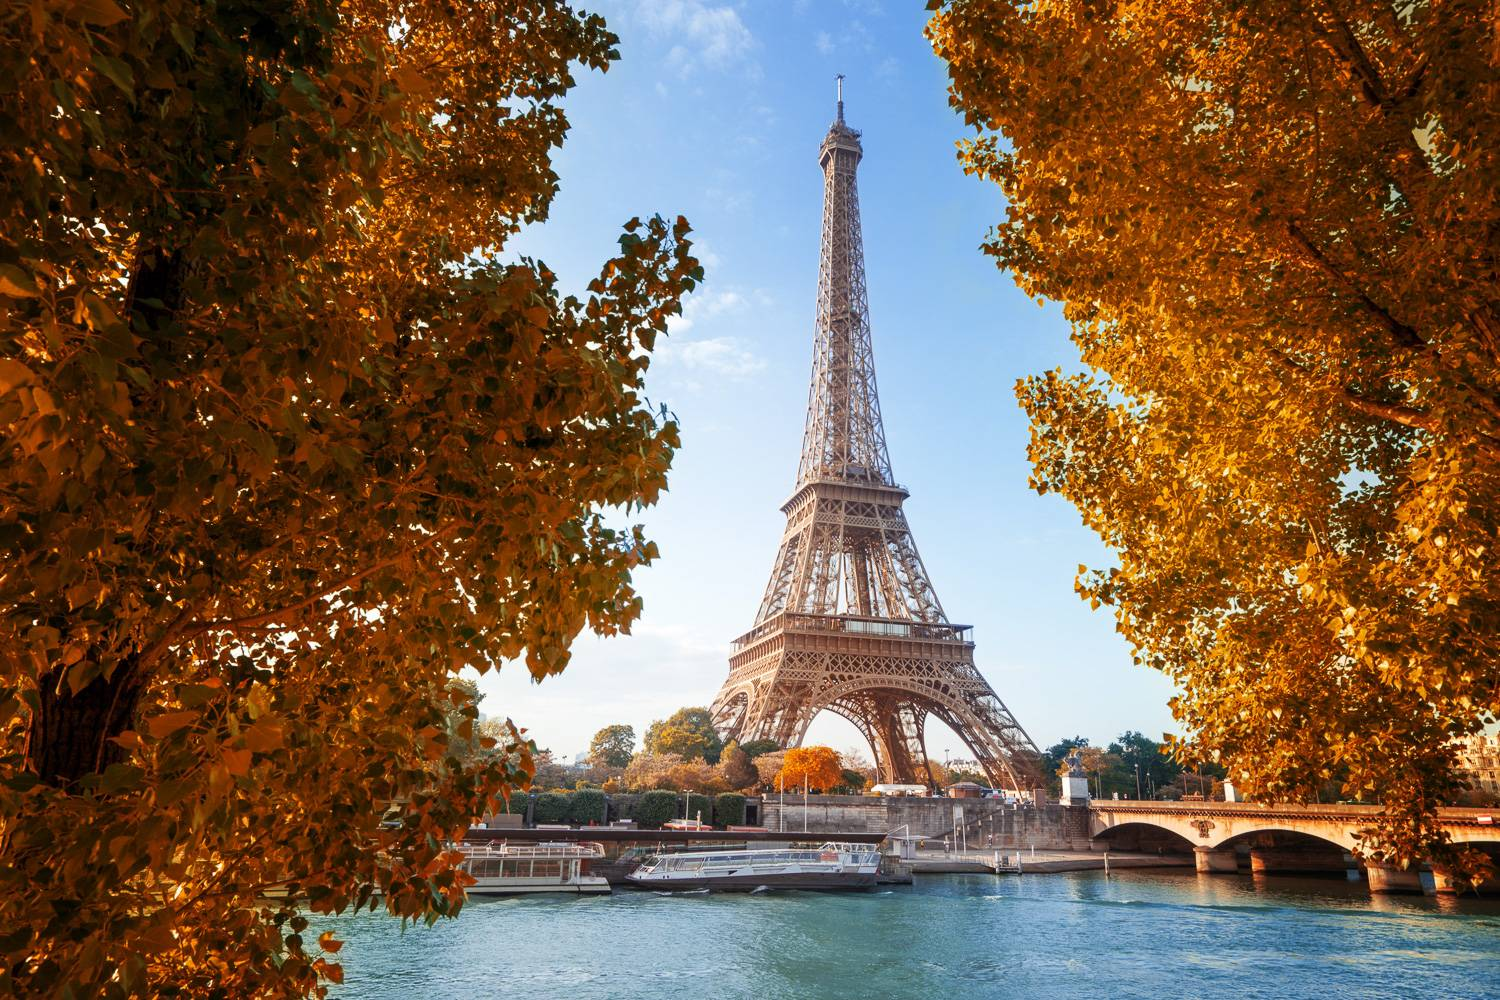 Guida allo splendore autunnale di Parigi